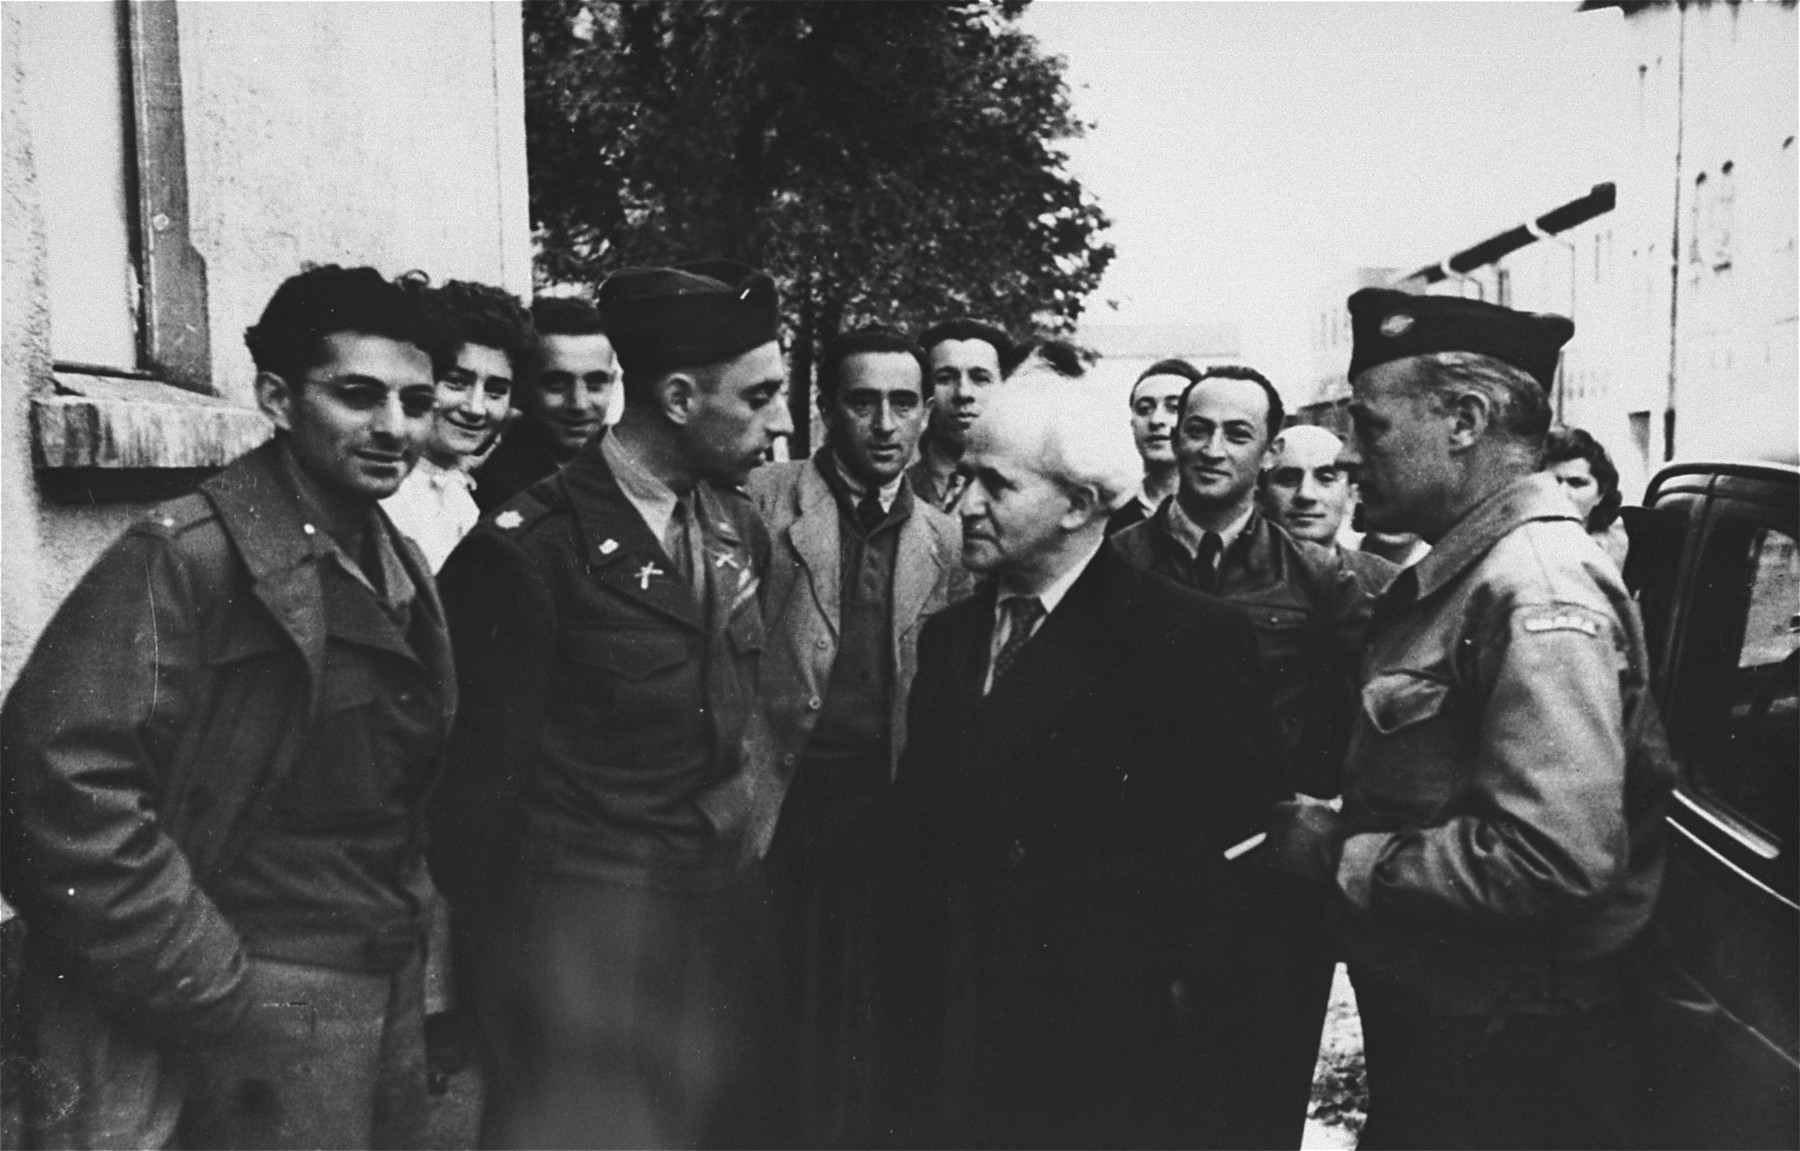 Major Irving Heymont converses with David Ben-Gurion during his visit to the Landsberg displaced persons camp.    Also pictured is U.S. Army chaplain, Rabbi Abraham Klausner (on the left ) and Abraham Glassgold, UNRRA camp director (at the far right).  [oversized print]